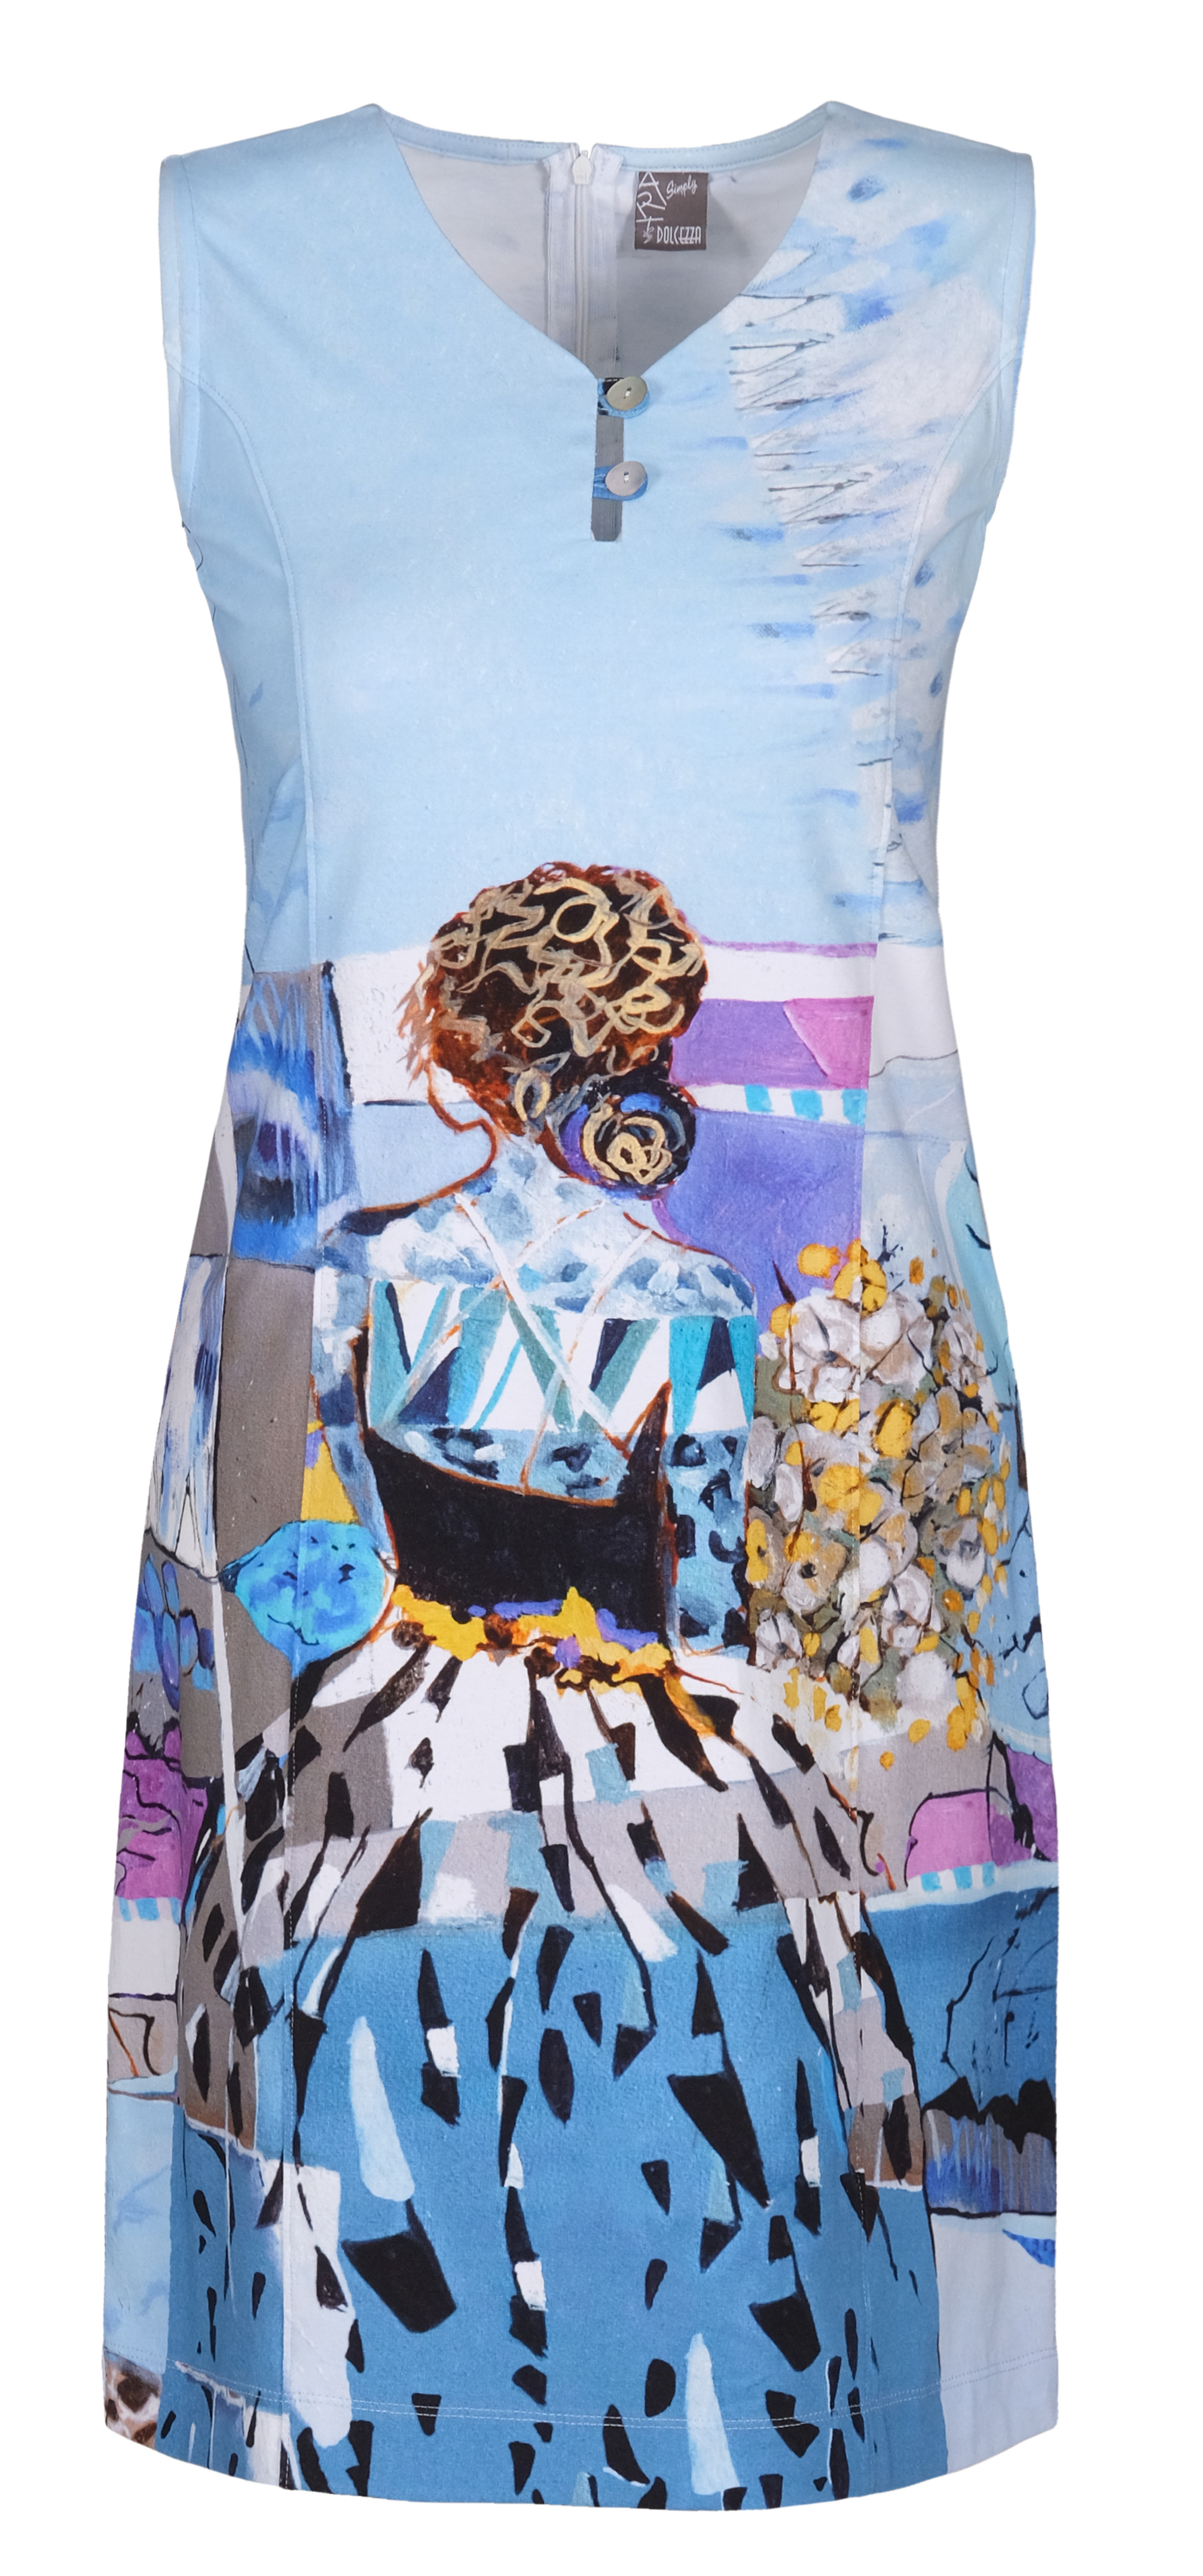 Simply Art Dolcezza: Princess Danae Abstract Art Flared Dress (1 Left!) DOLCEZZA_SIMPLYART_21744